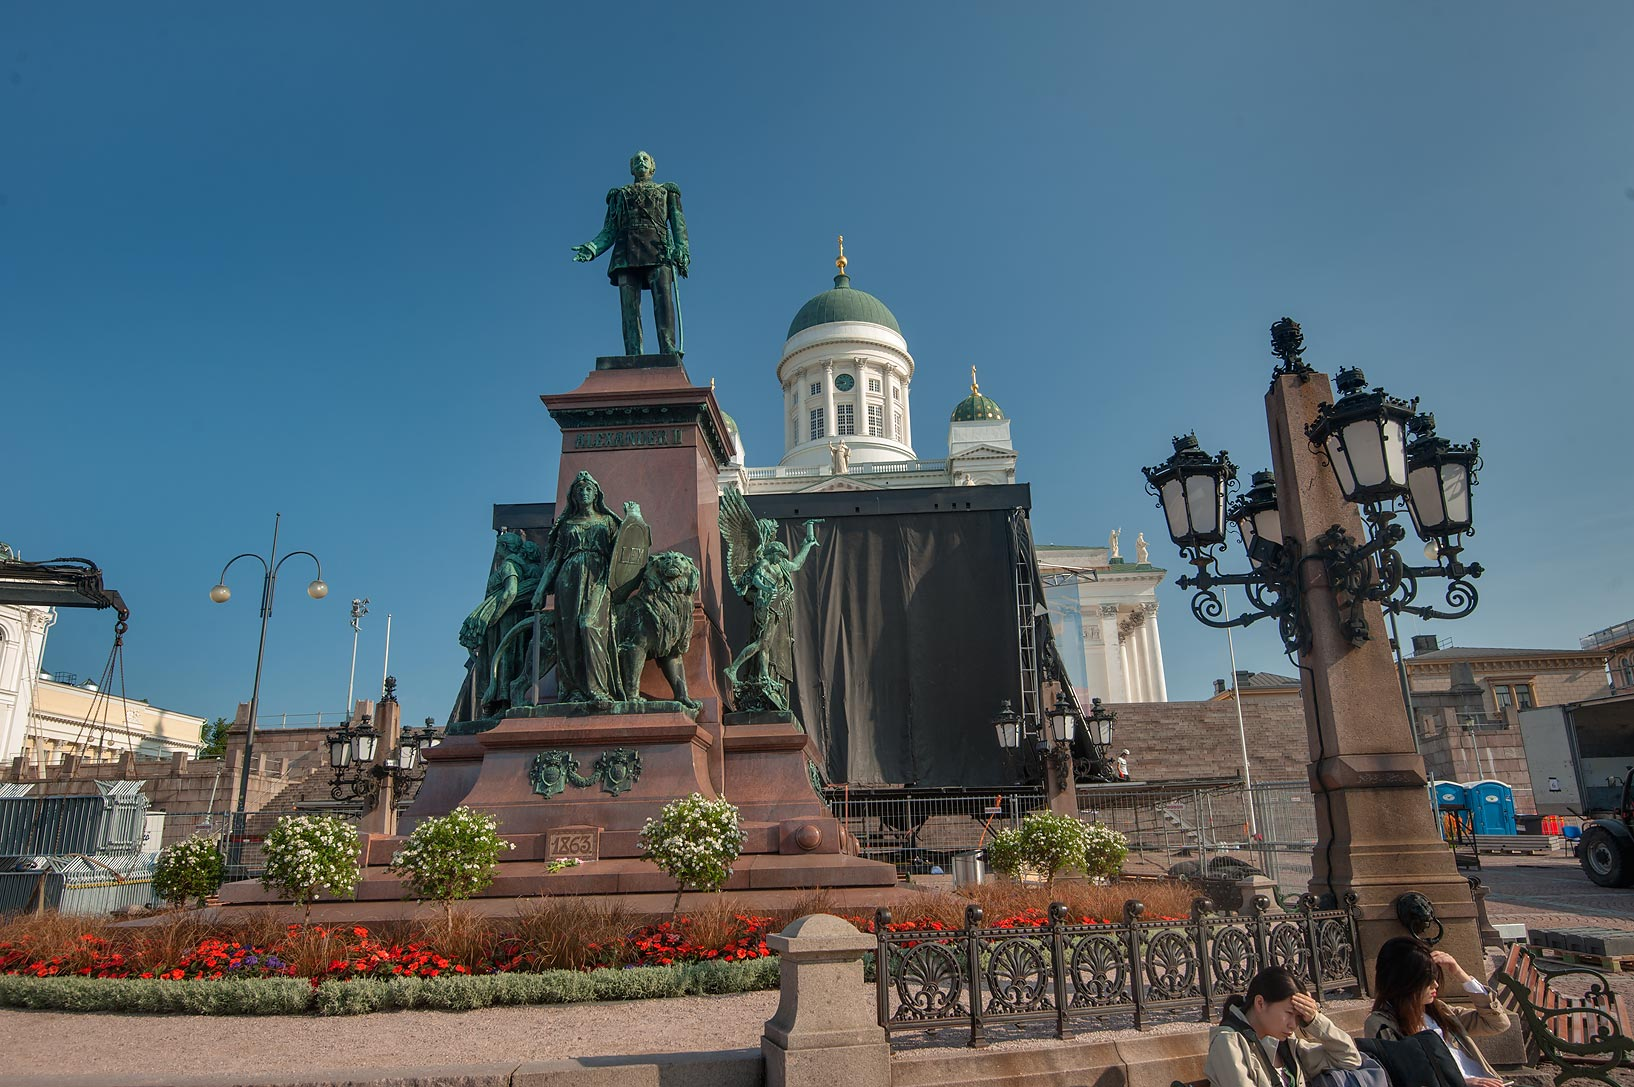 Statue of Alexander II on Senate Square. Helsinki, Finland